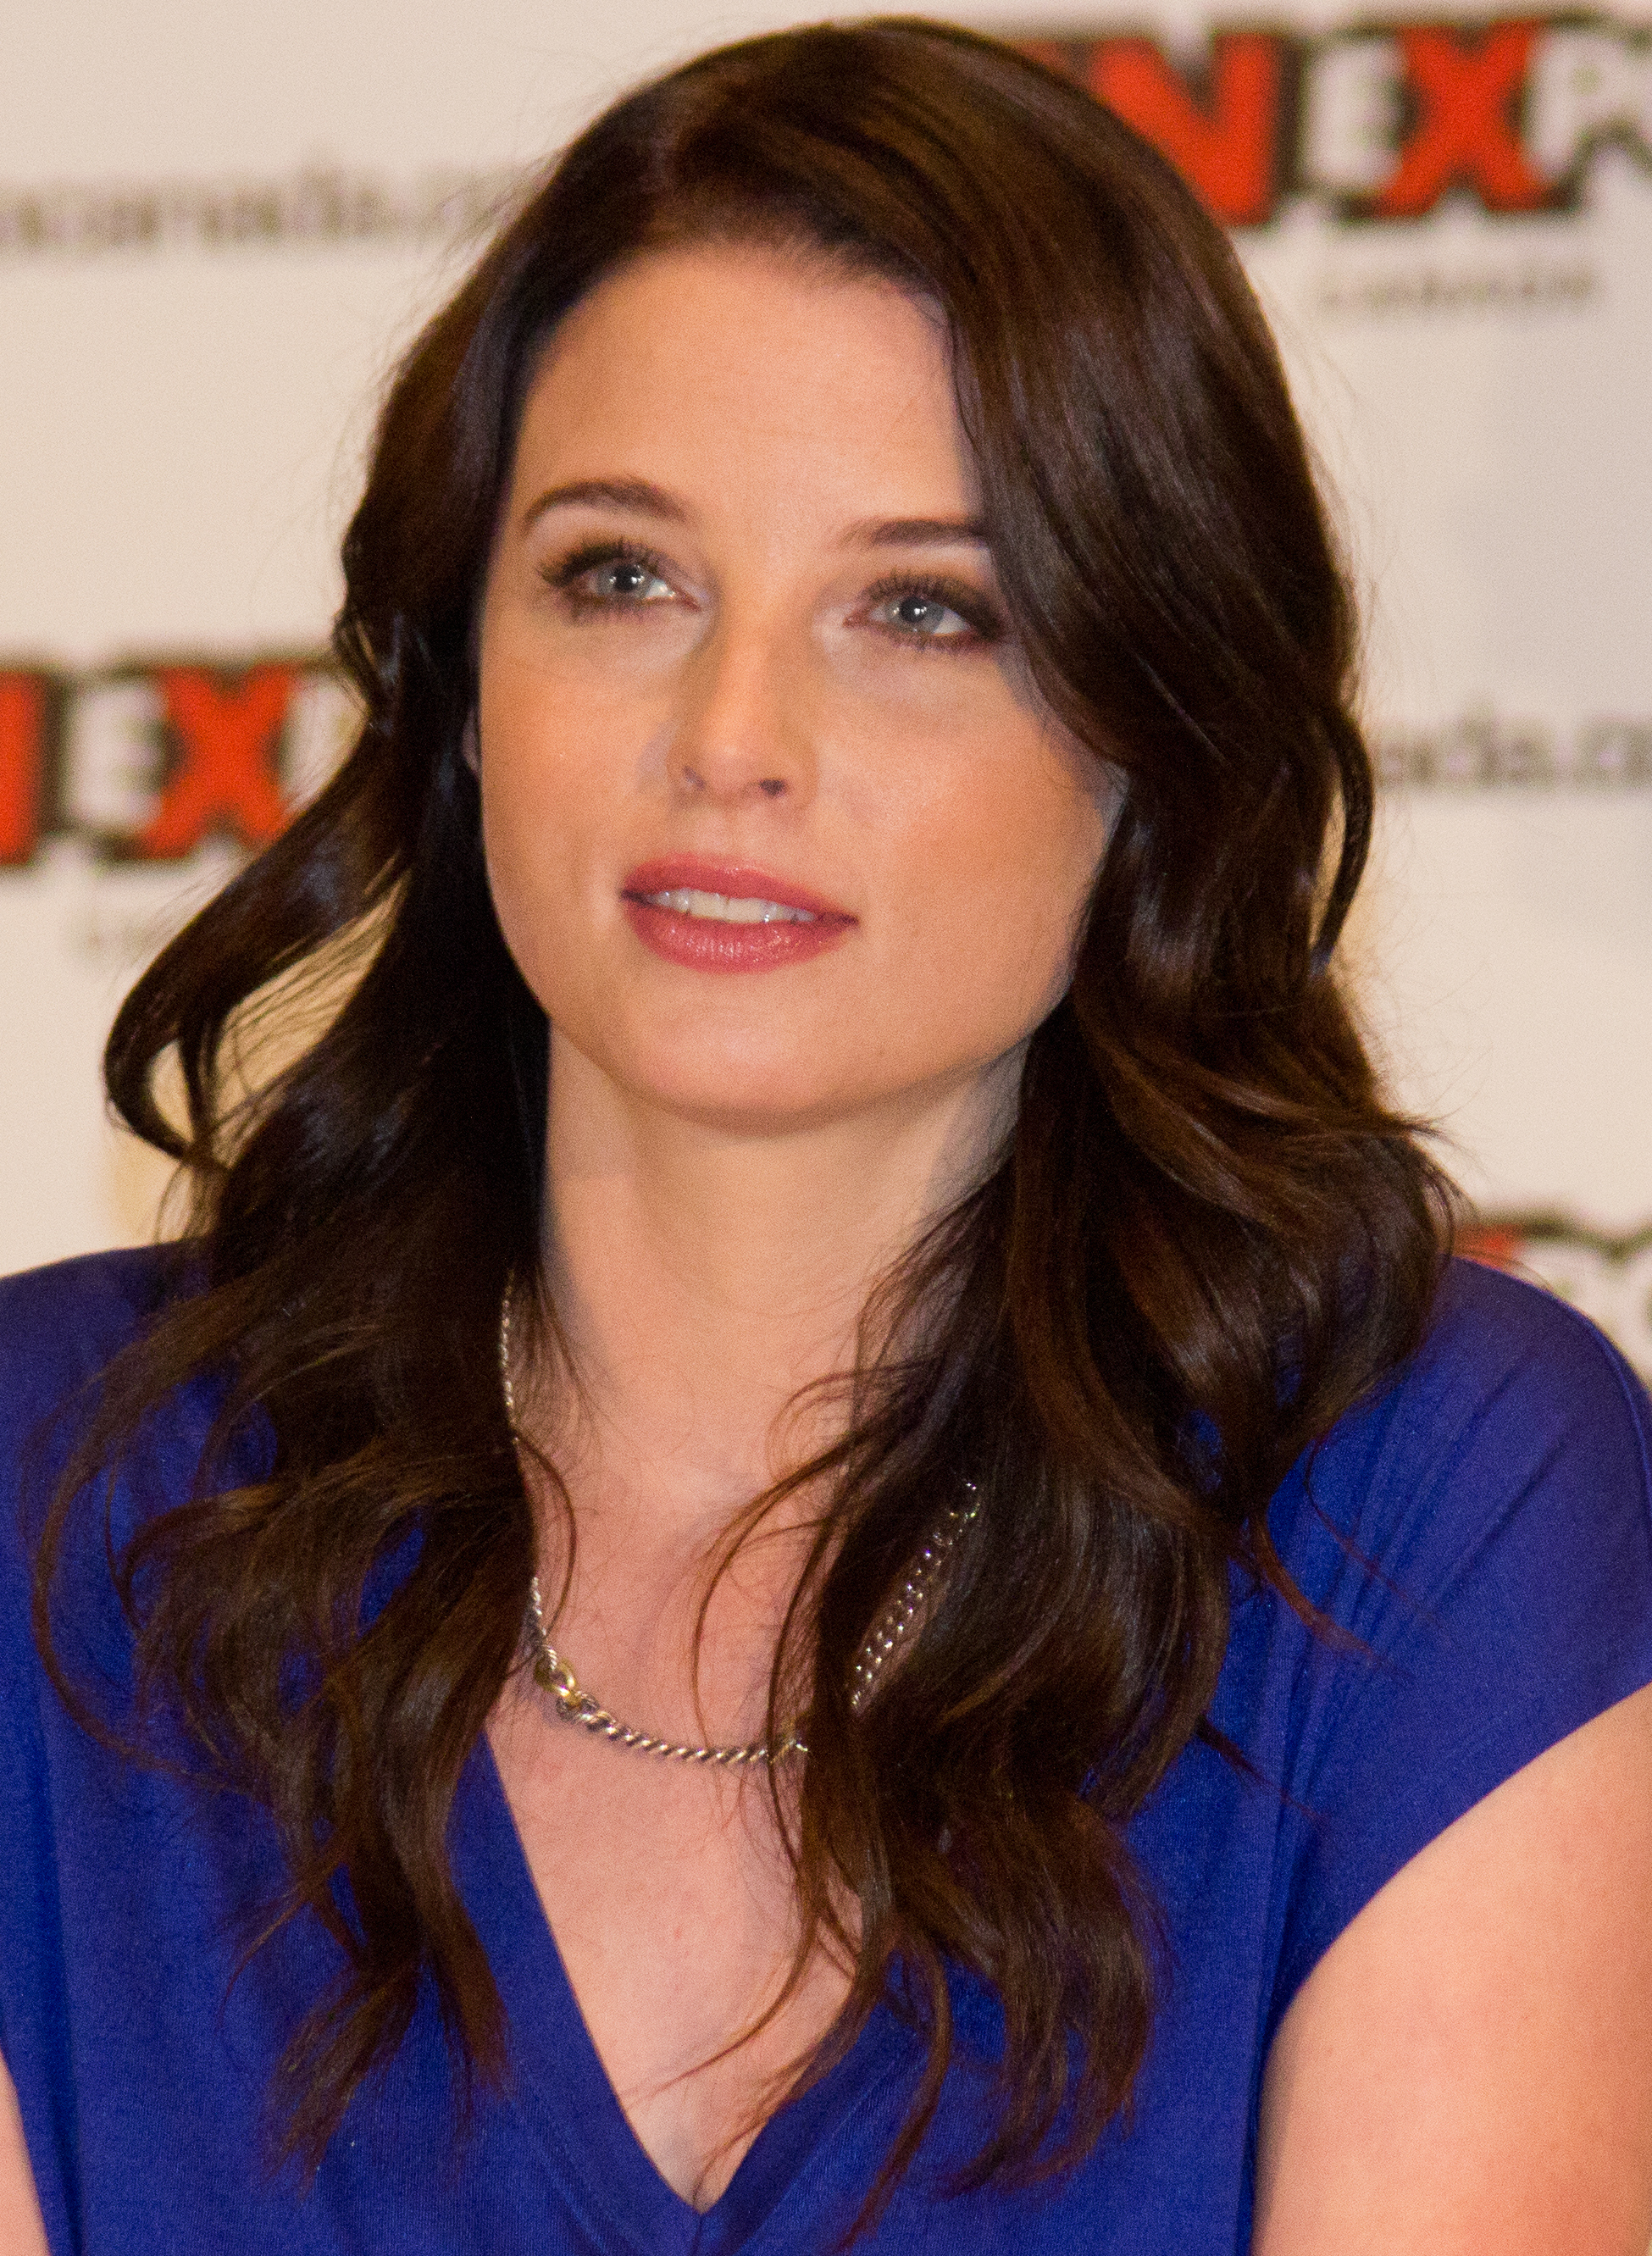 Rachel Nichols (actress) - Wikipedia, the free encyclopedia